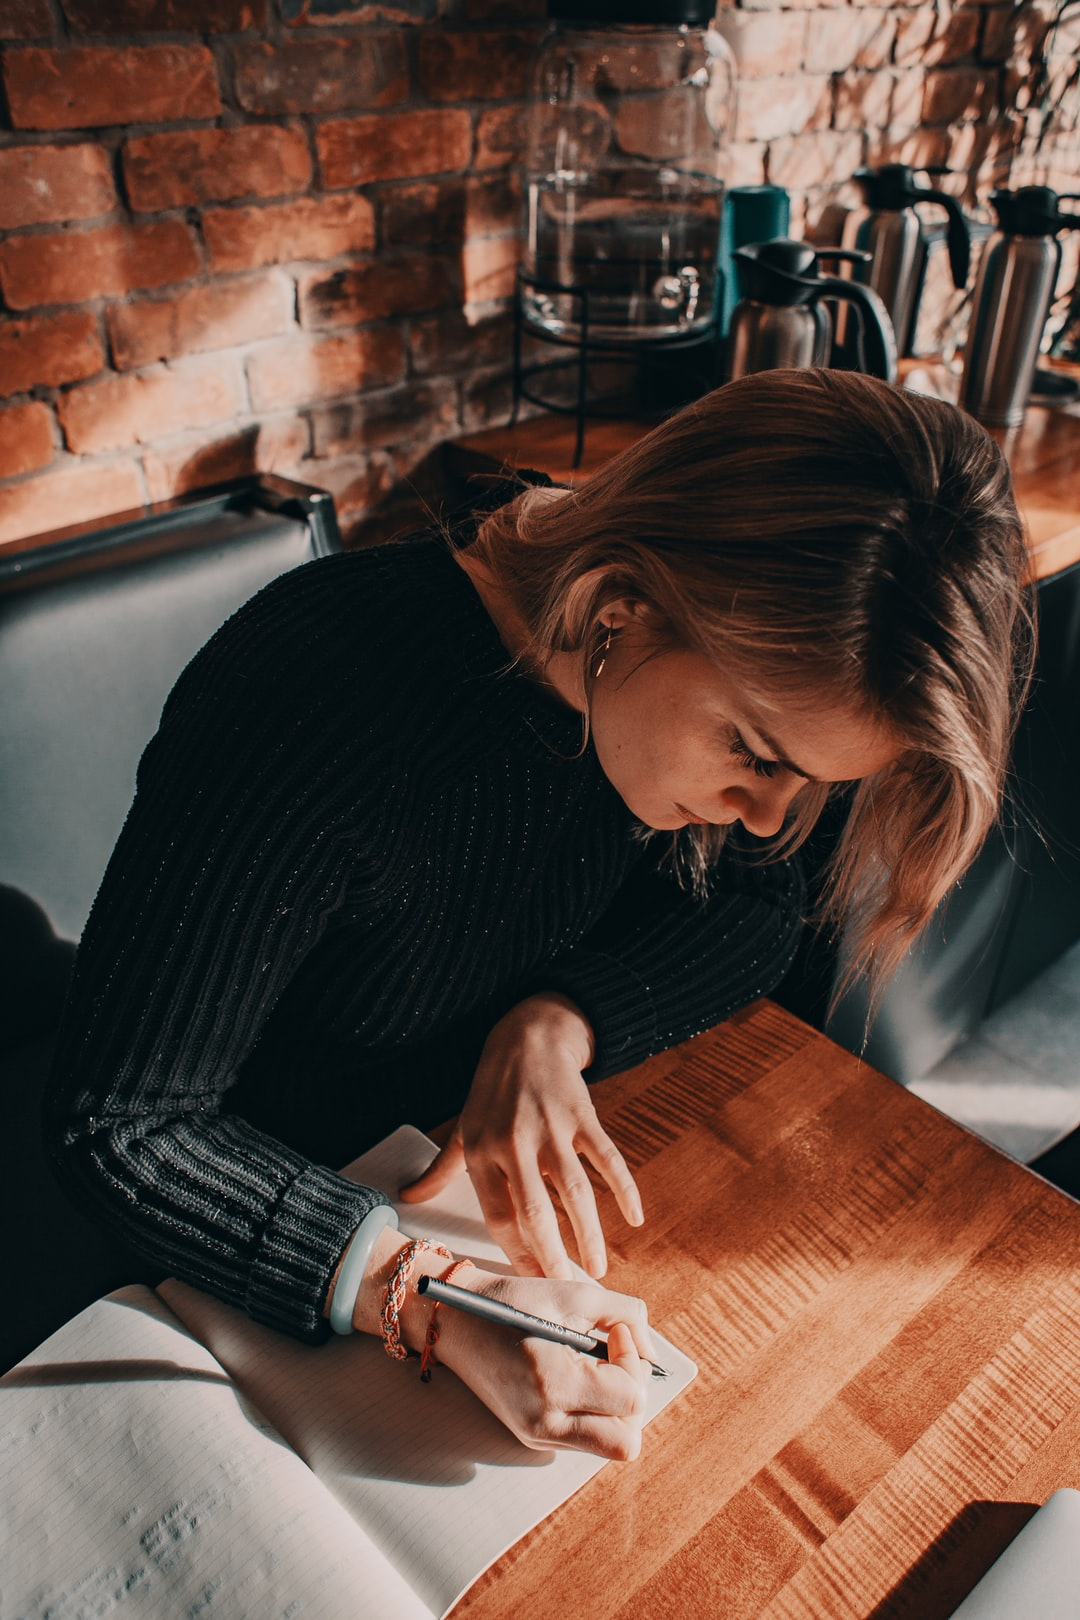 Writer at coffee shop - Toronto - All pictures edited with my presets that you can find on my website in BIO